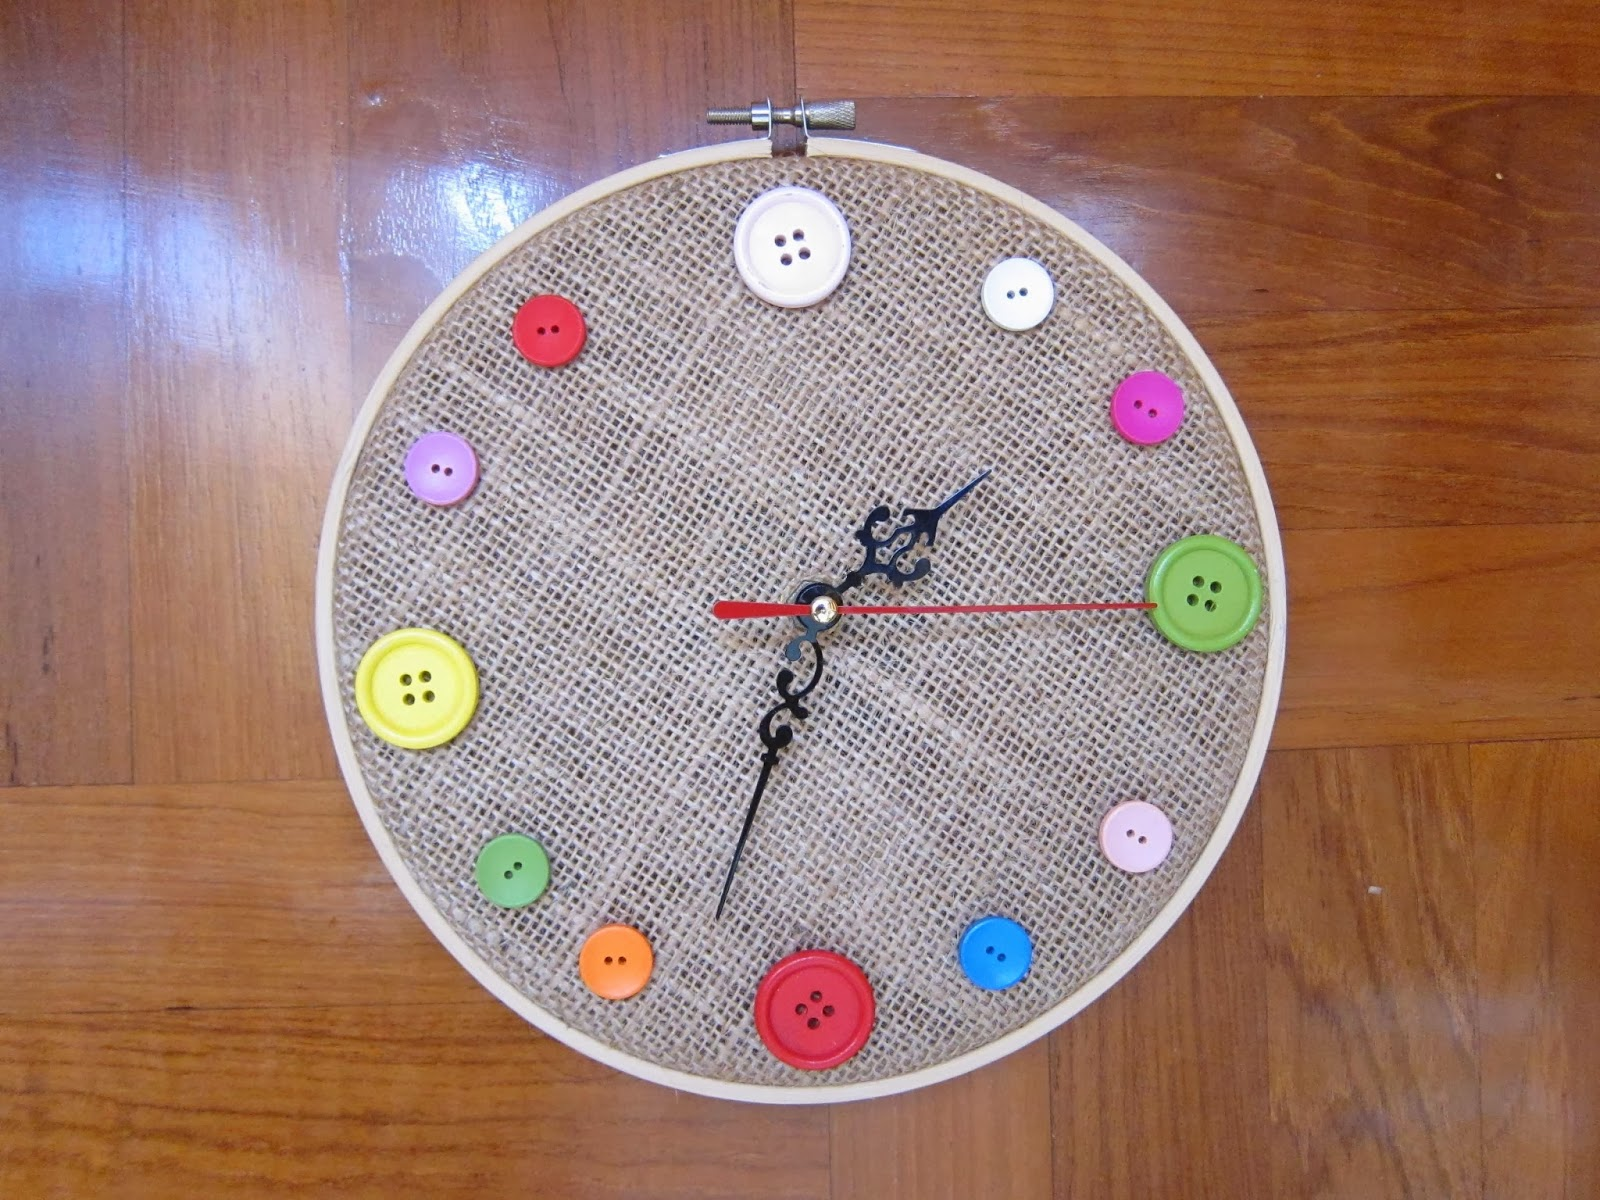 Wall clock kids image collections home wall decoration ideas shine kids crafts clocks made by stitchery loops clocks made by stitchery loops amipublicfo image collections amipublicfo Gallery